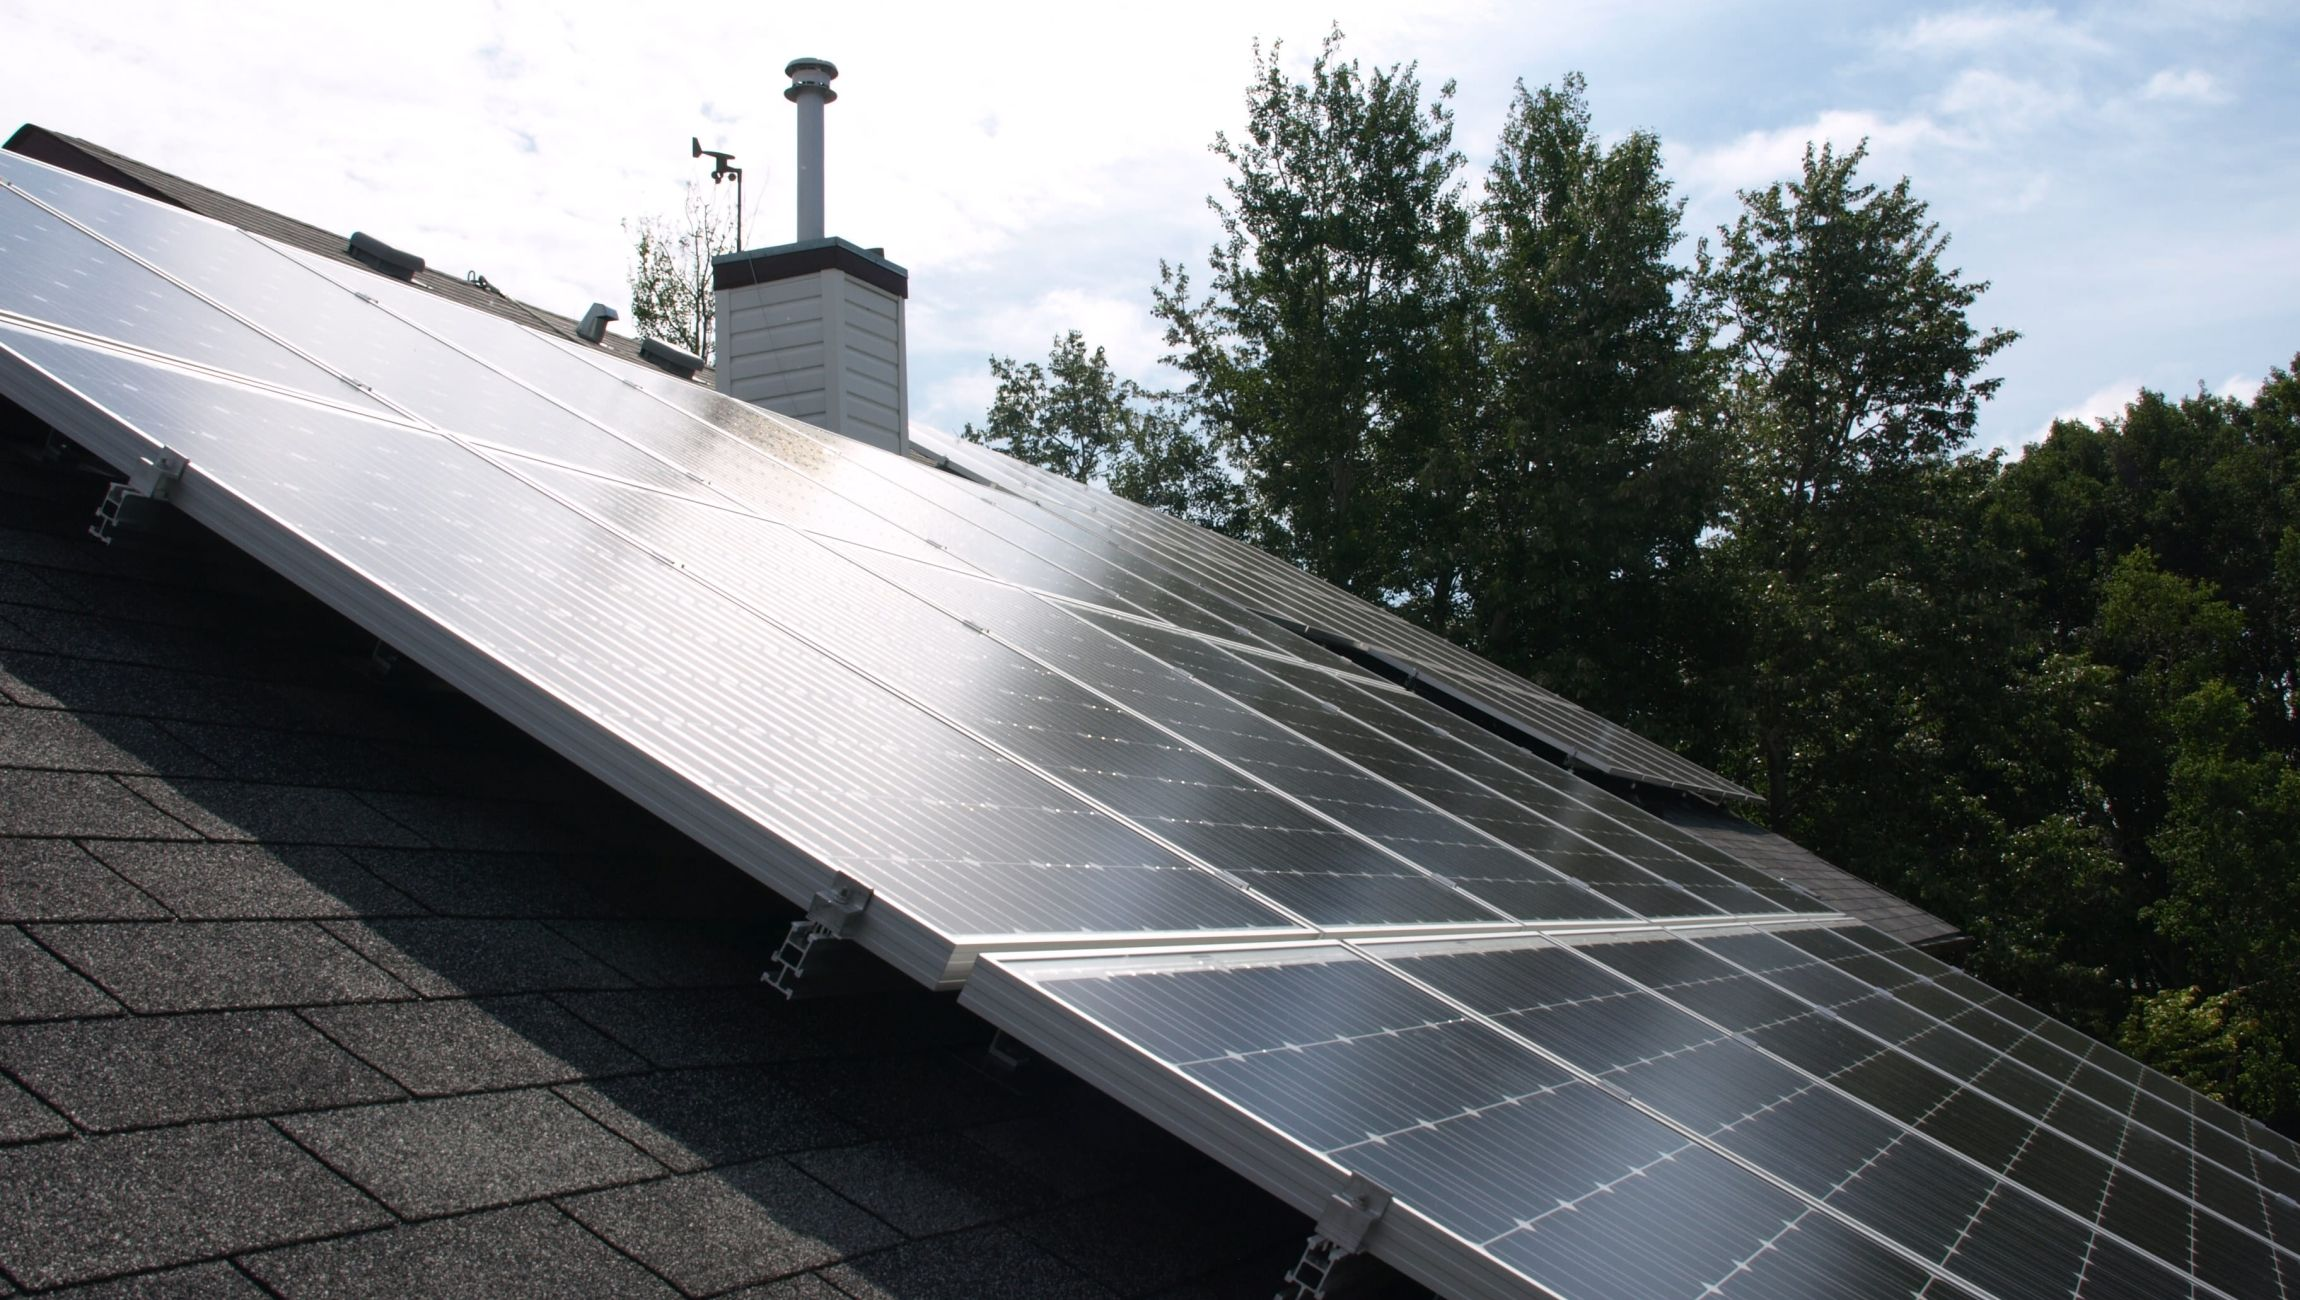 Typical roof-top residential solar